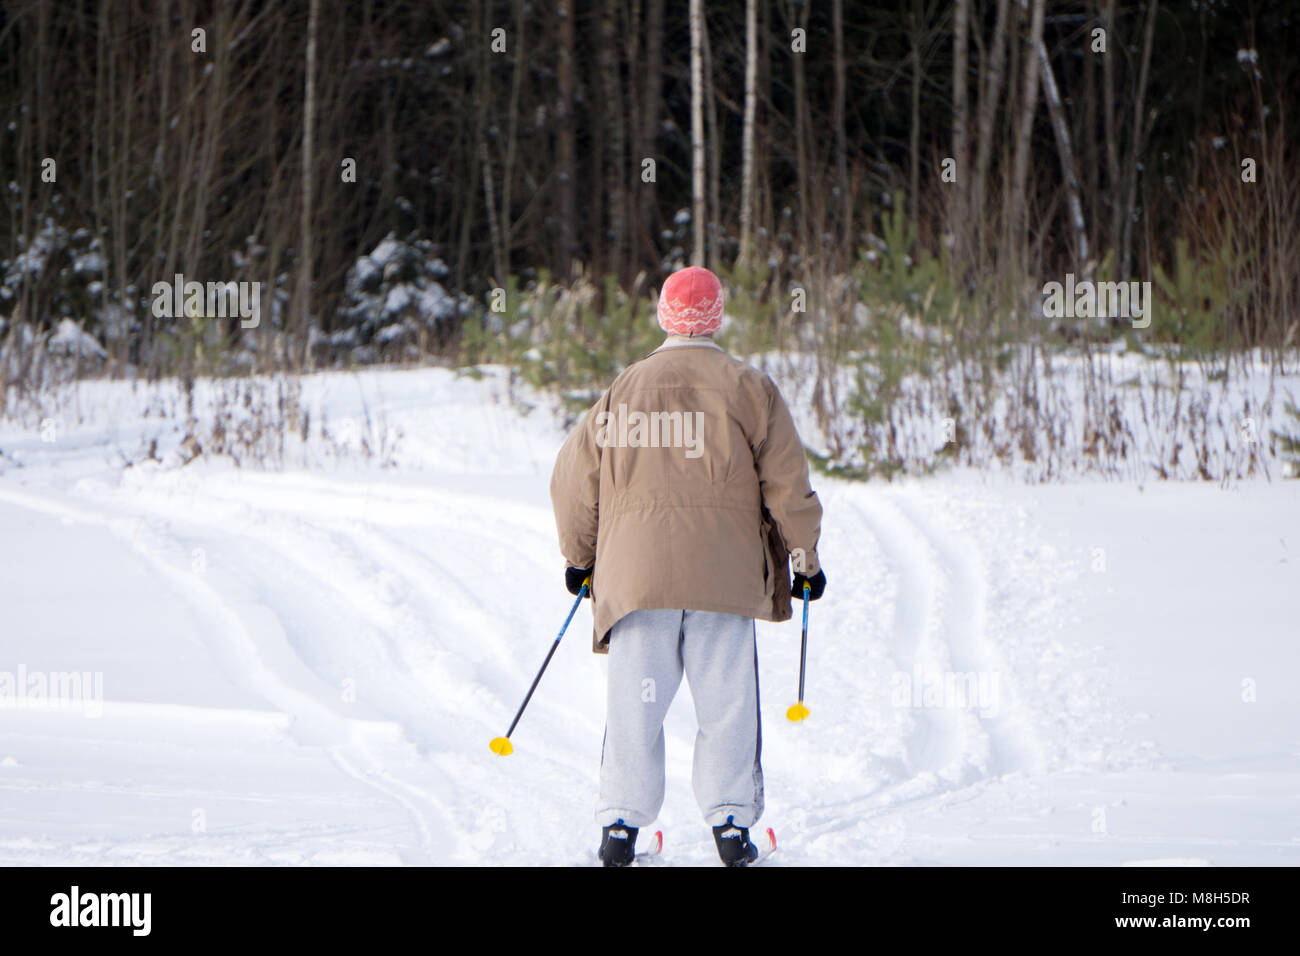 senior man with skis in the snow - Stock Image